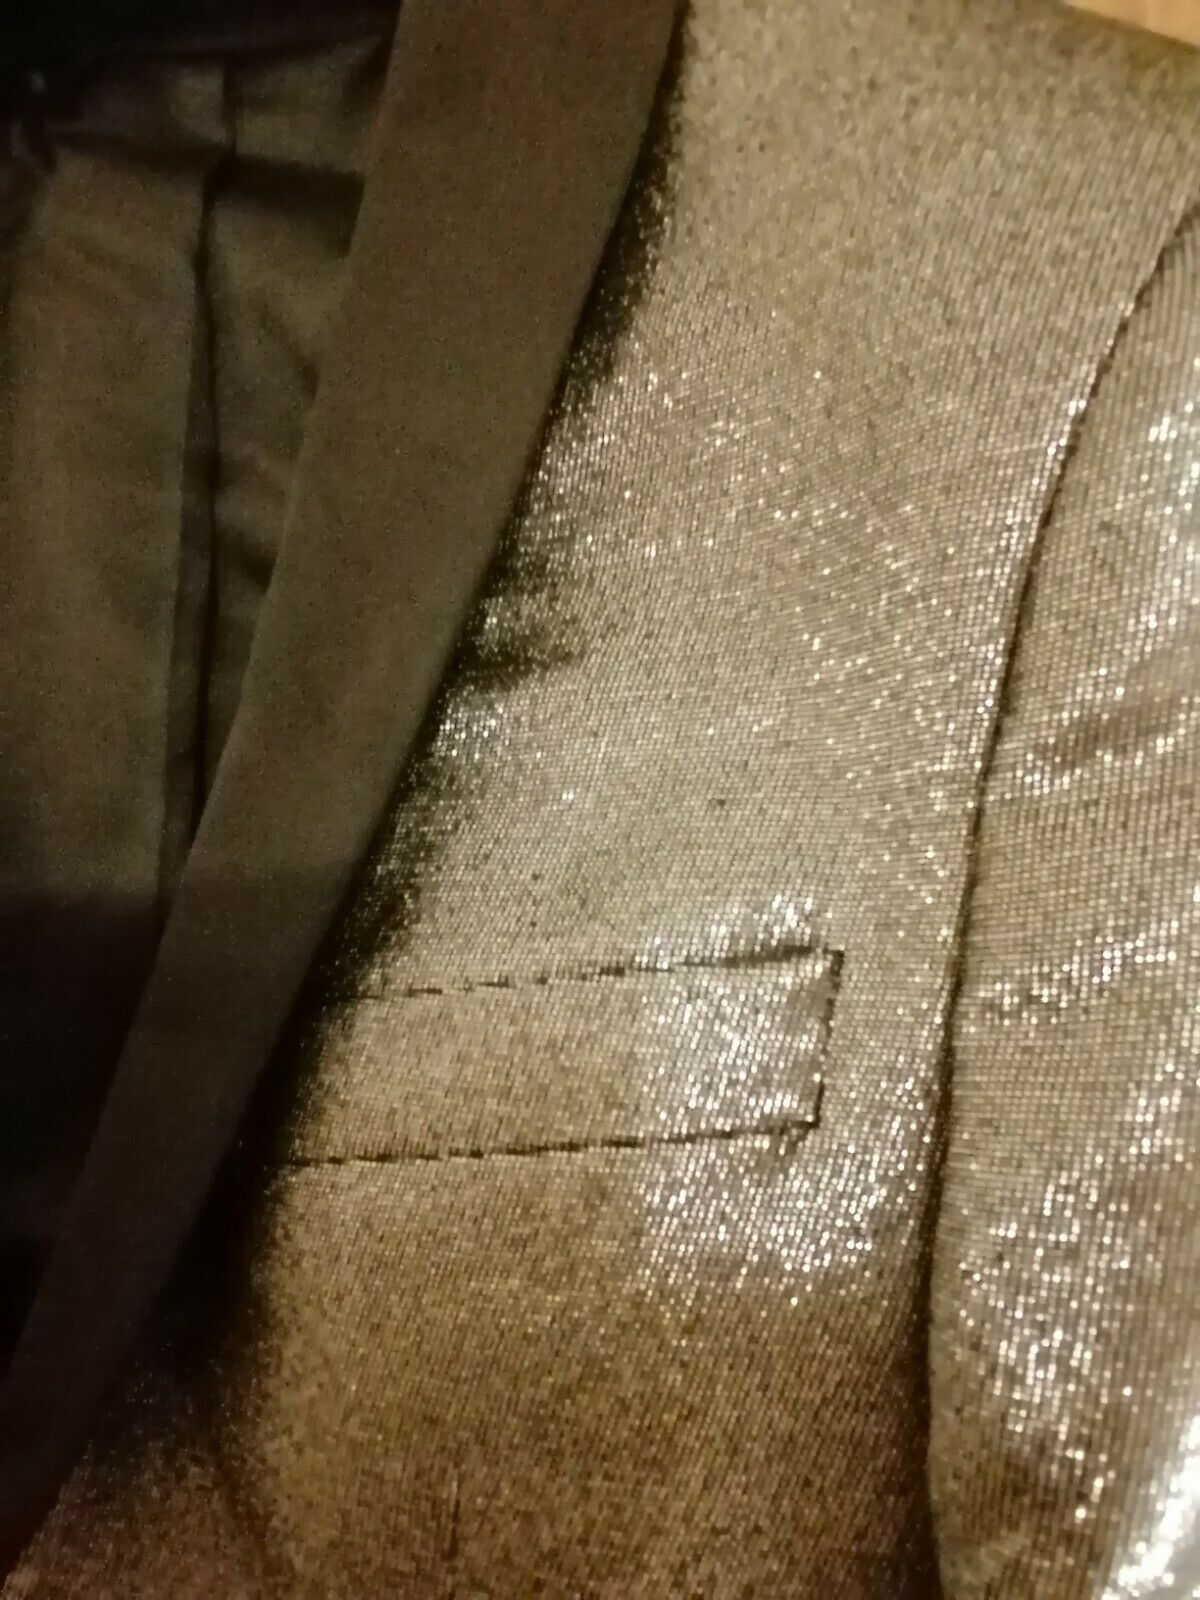 tuxedo evening dinner silver suit jacket stage cruise prom dance formal 34-36